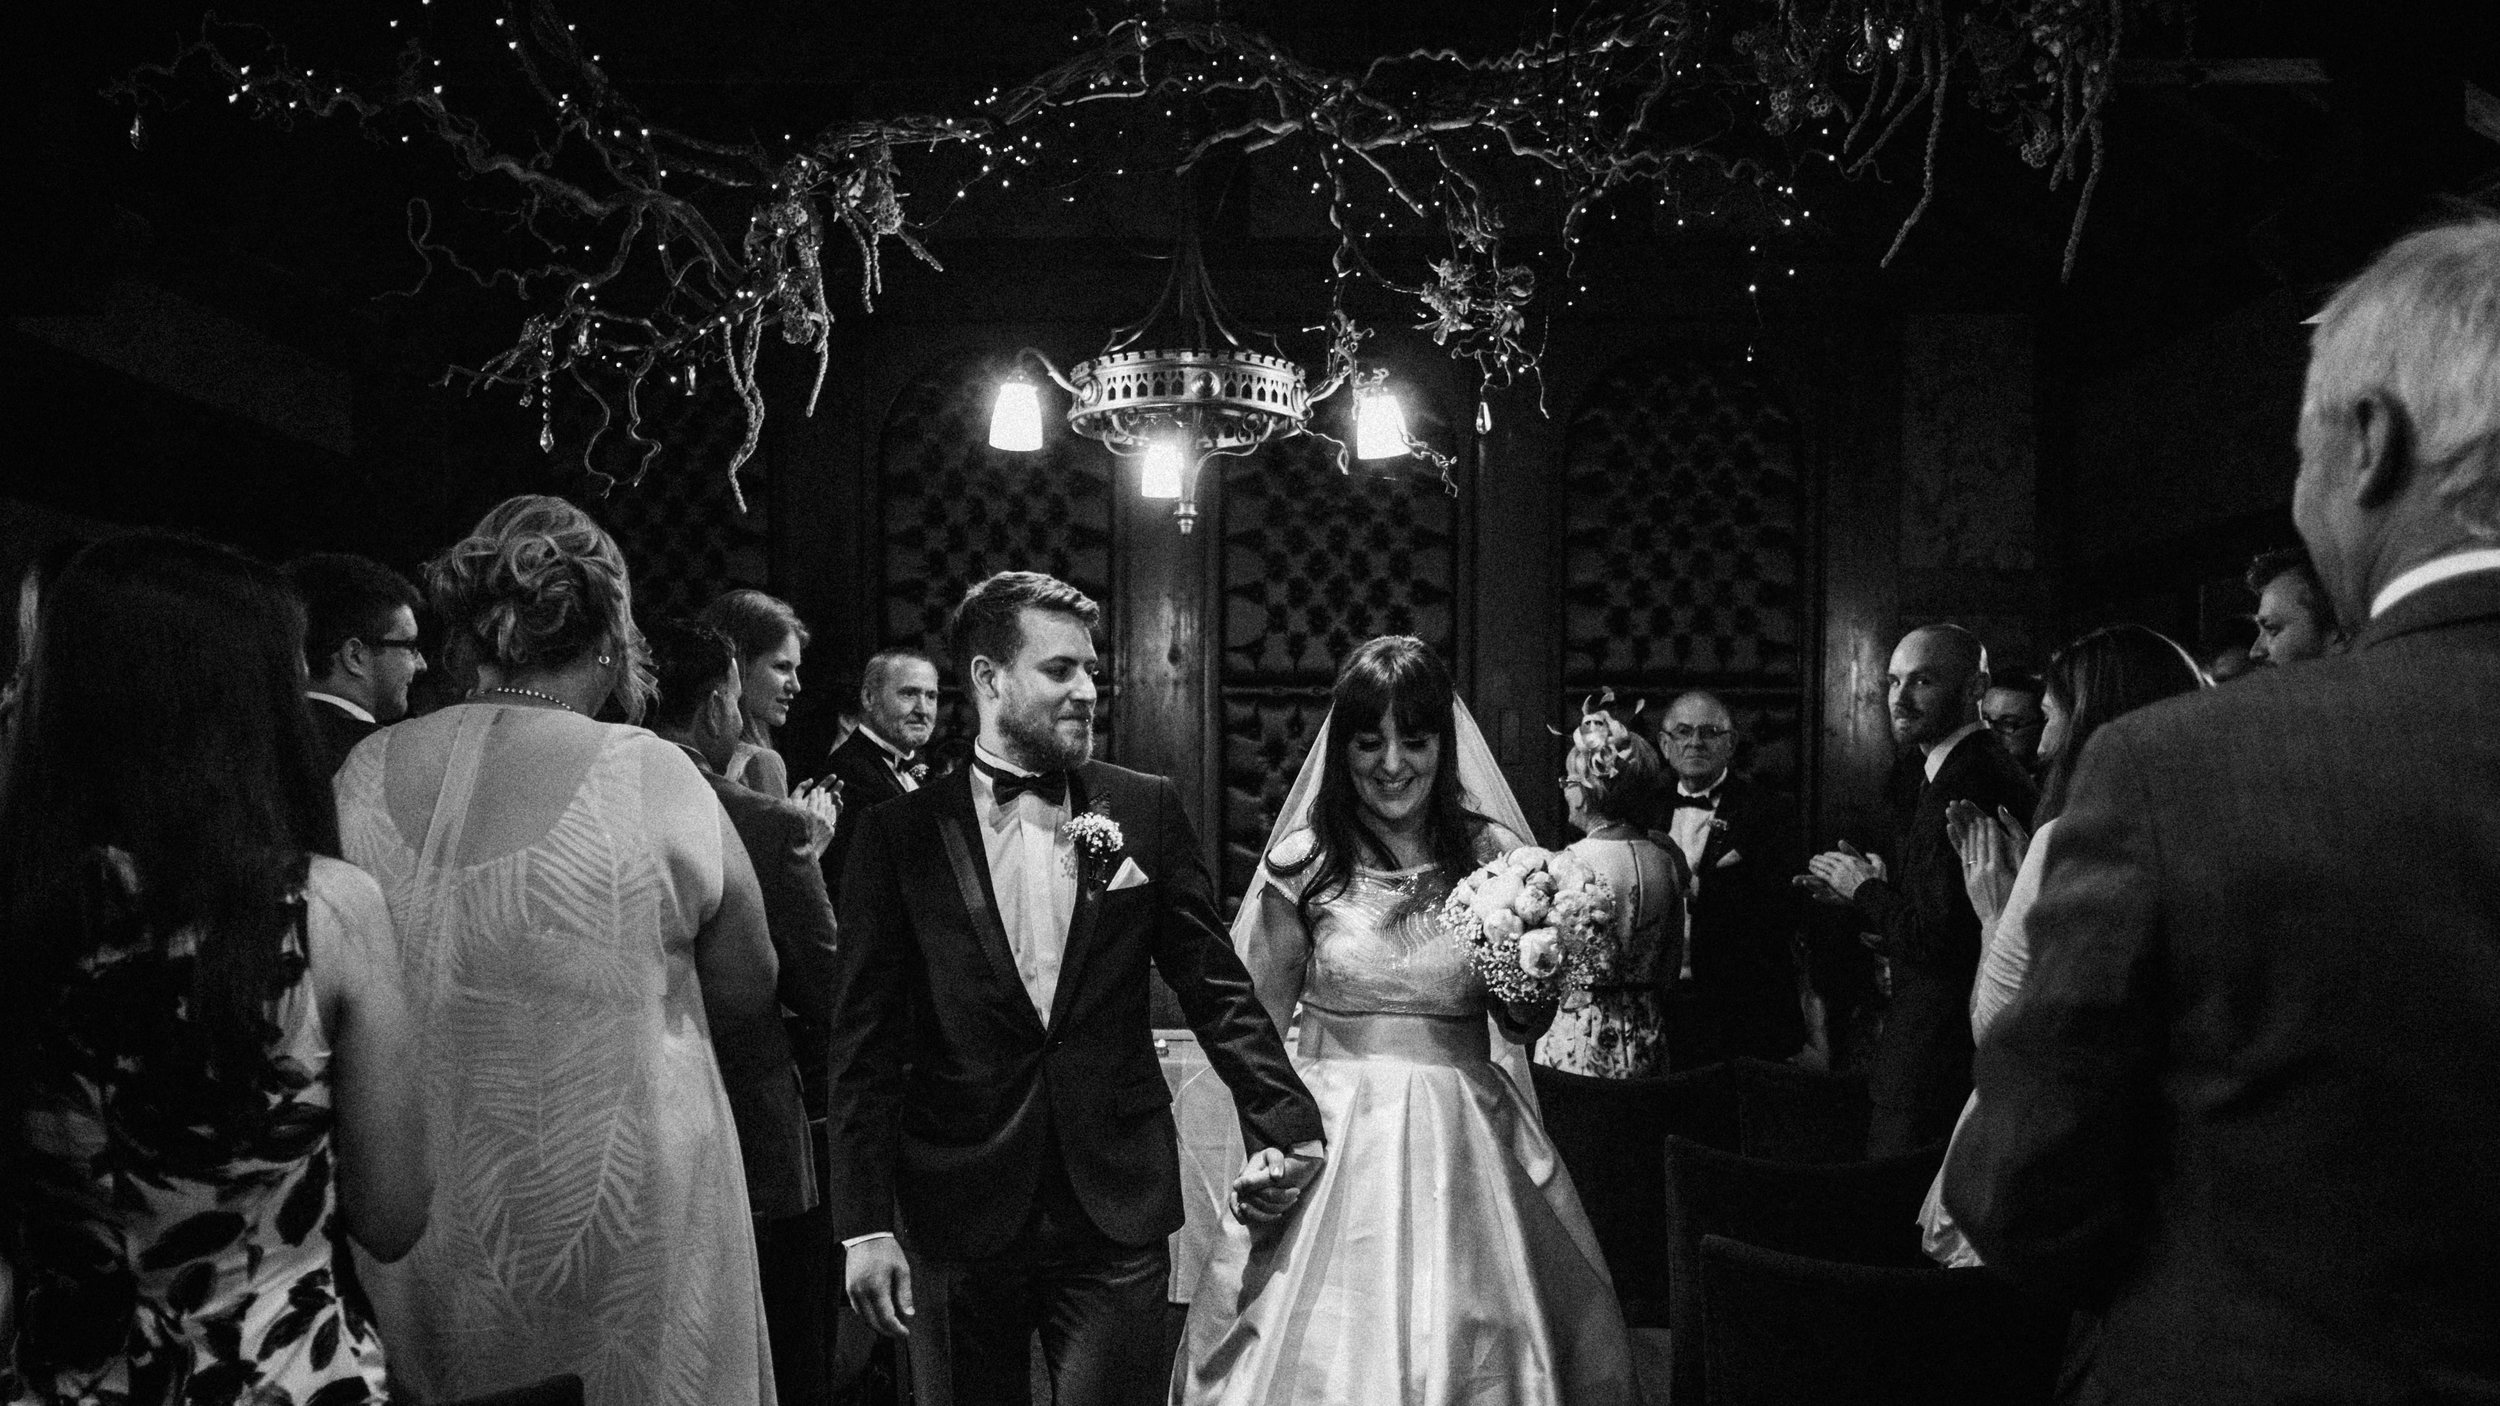 LaurenLee_UK_Documentary_Wedding_Photographer_Belle_Epoque0206.jpg